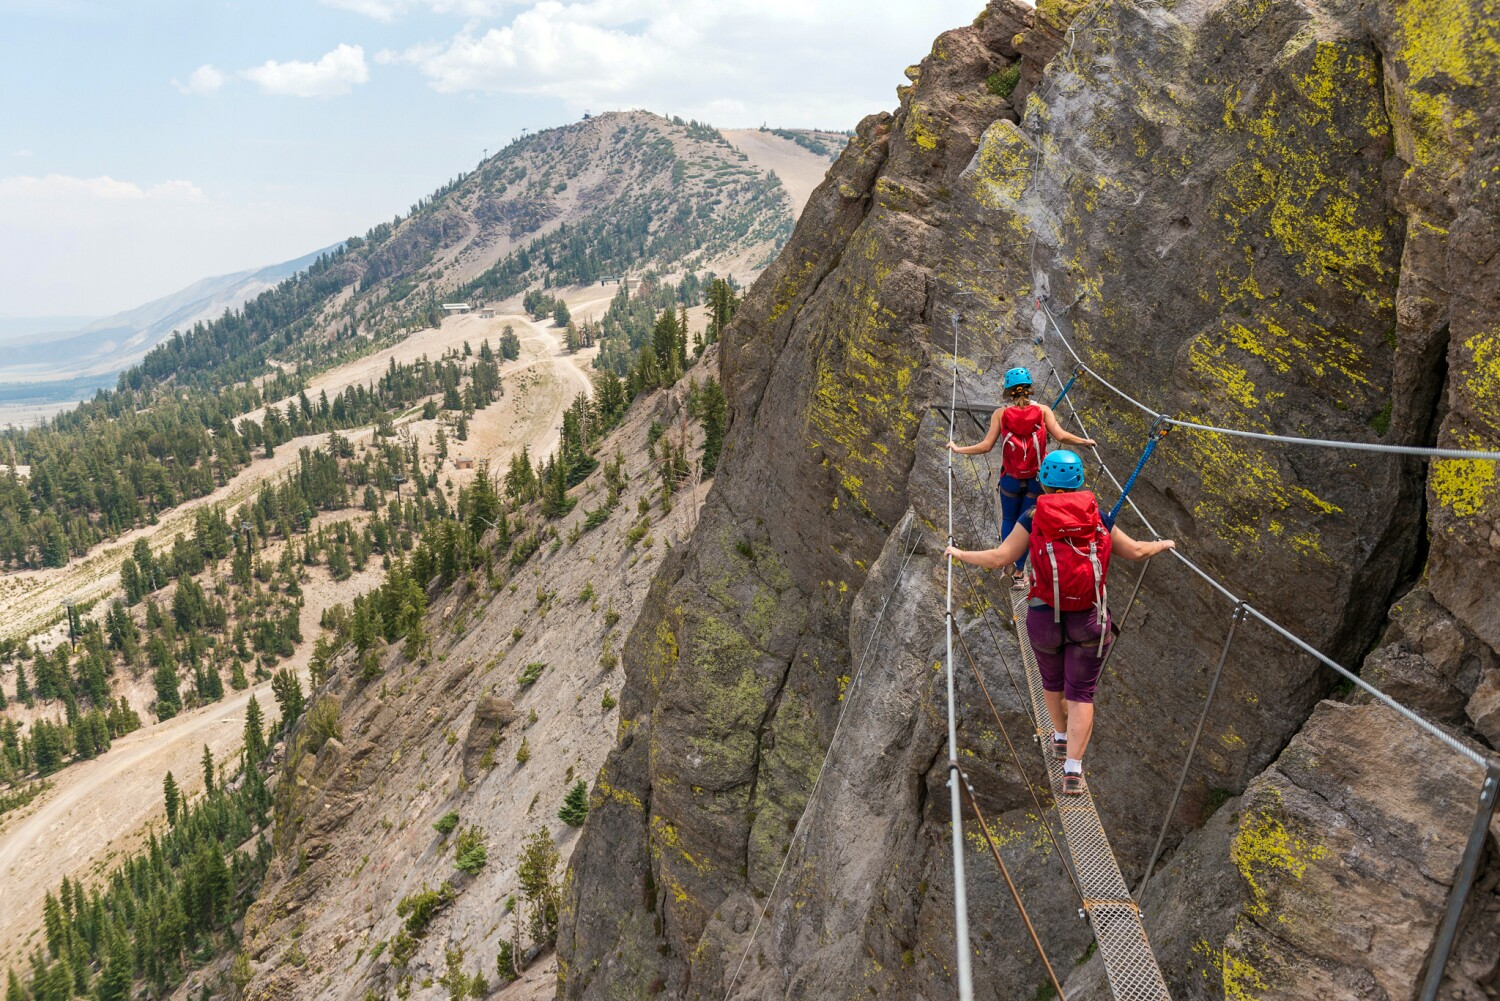 E-bike, stargaze, rock climb and hike at ski resorts in the West this summer